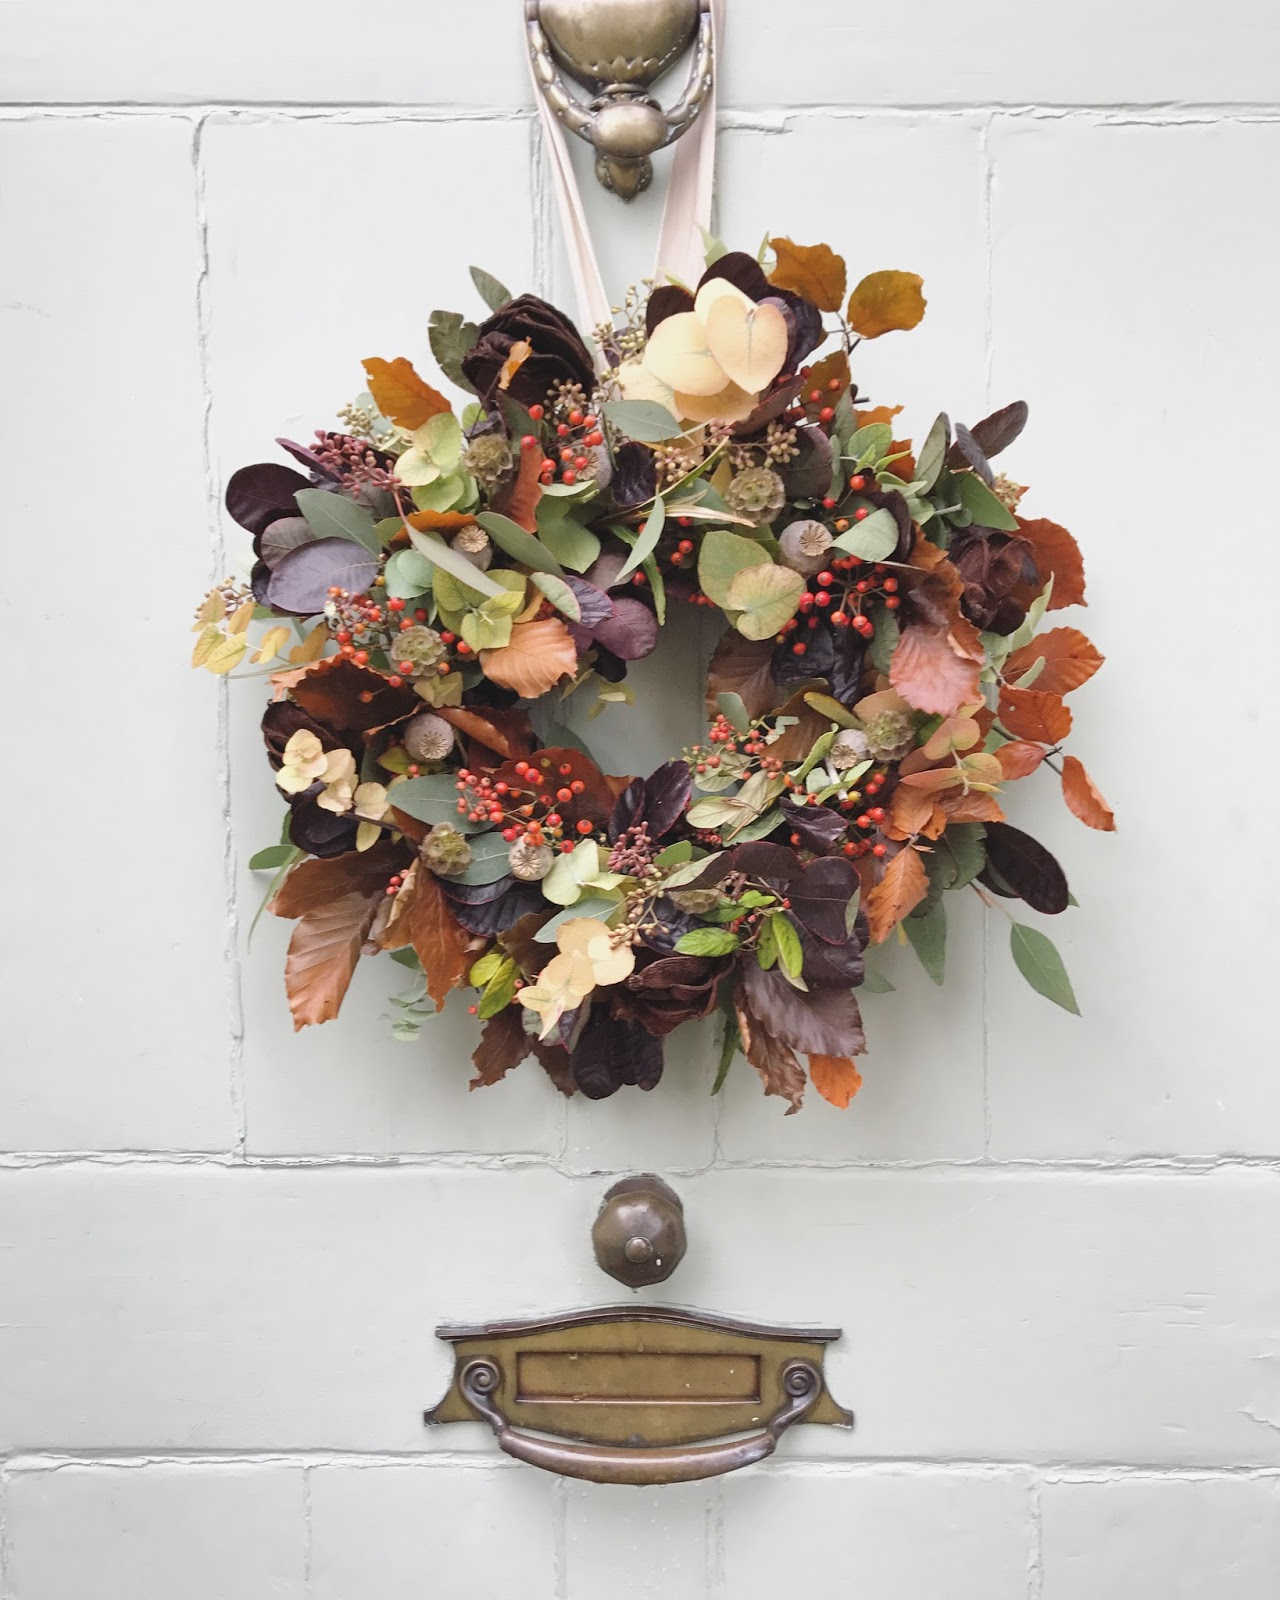 Autumn wreath making roses and rolltops izmirmasajfo Images